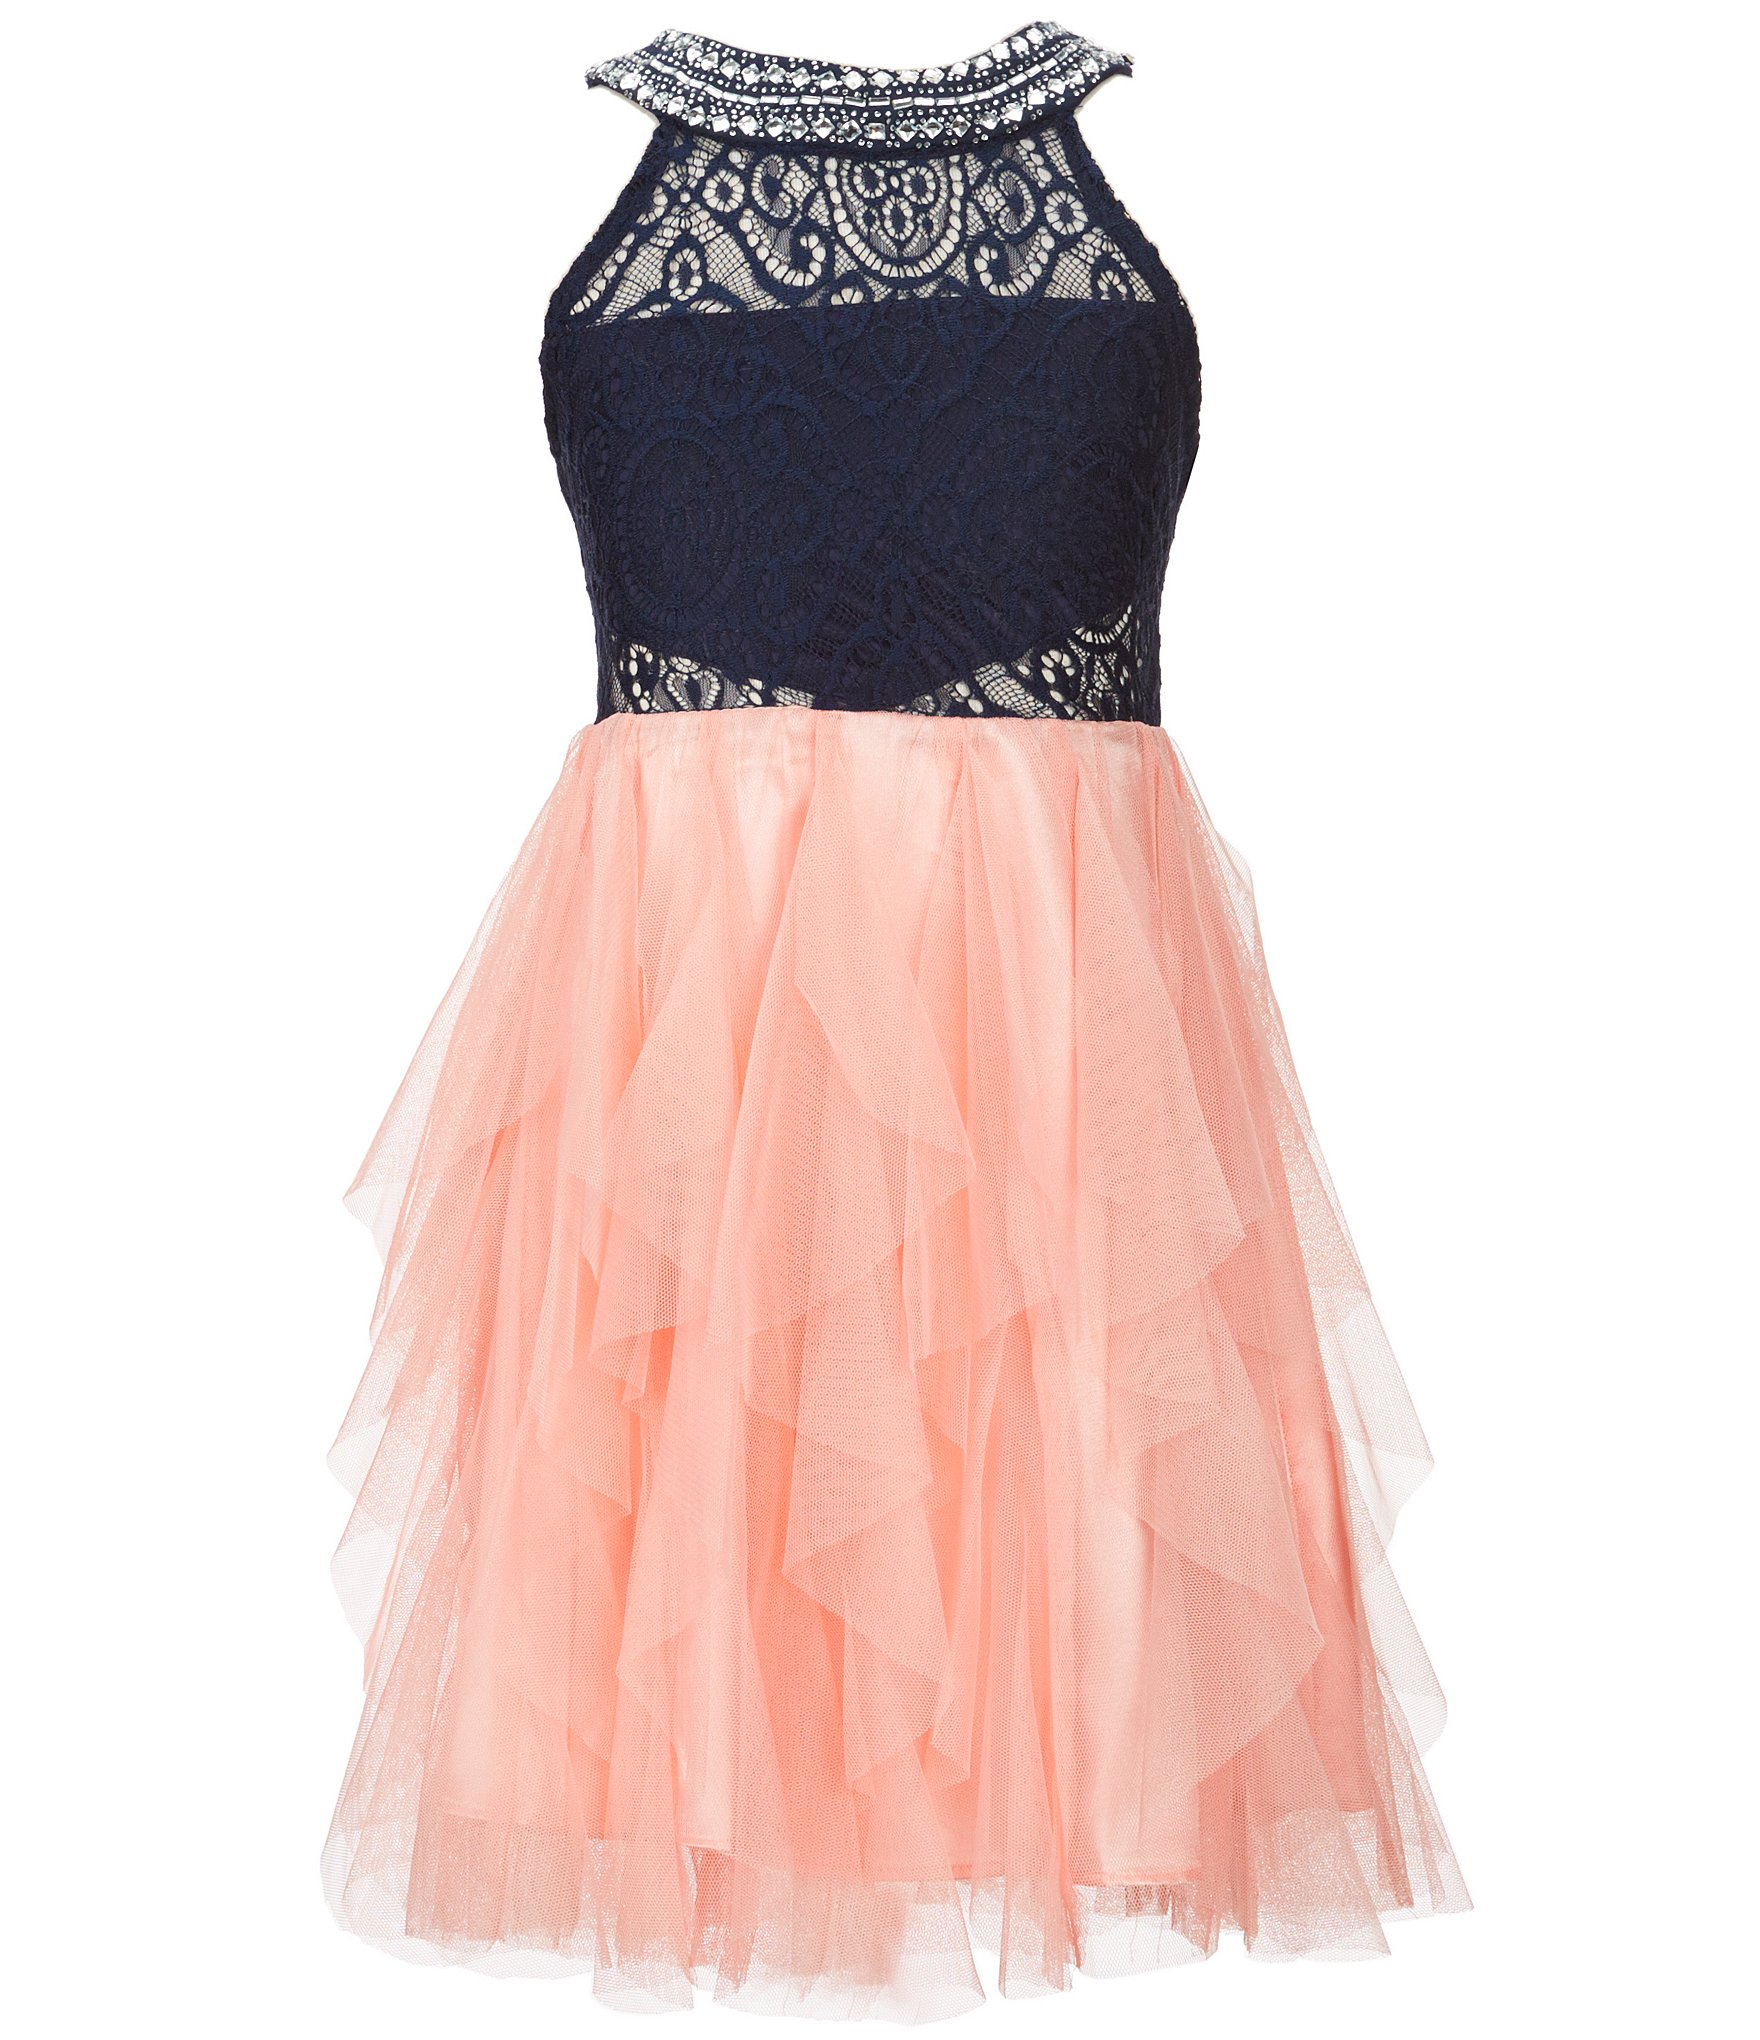 b9eeaf7e0403 tween dresses: Girls | Dillard's